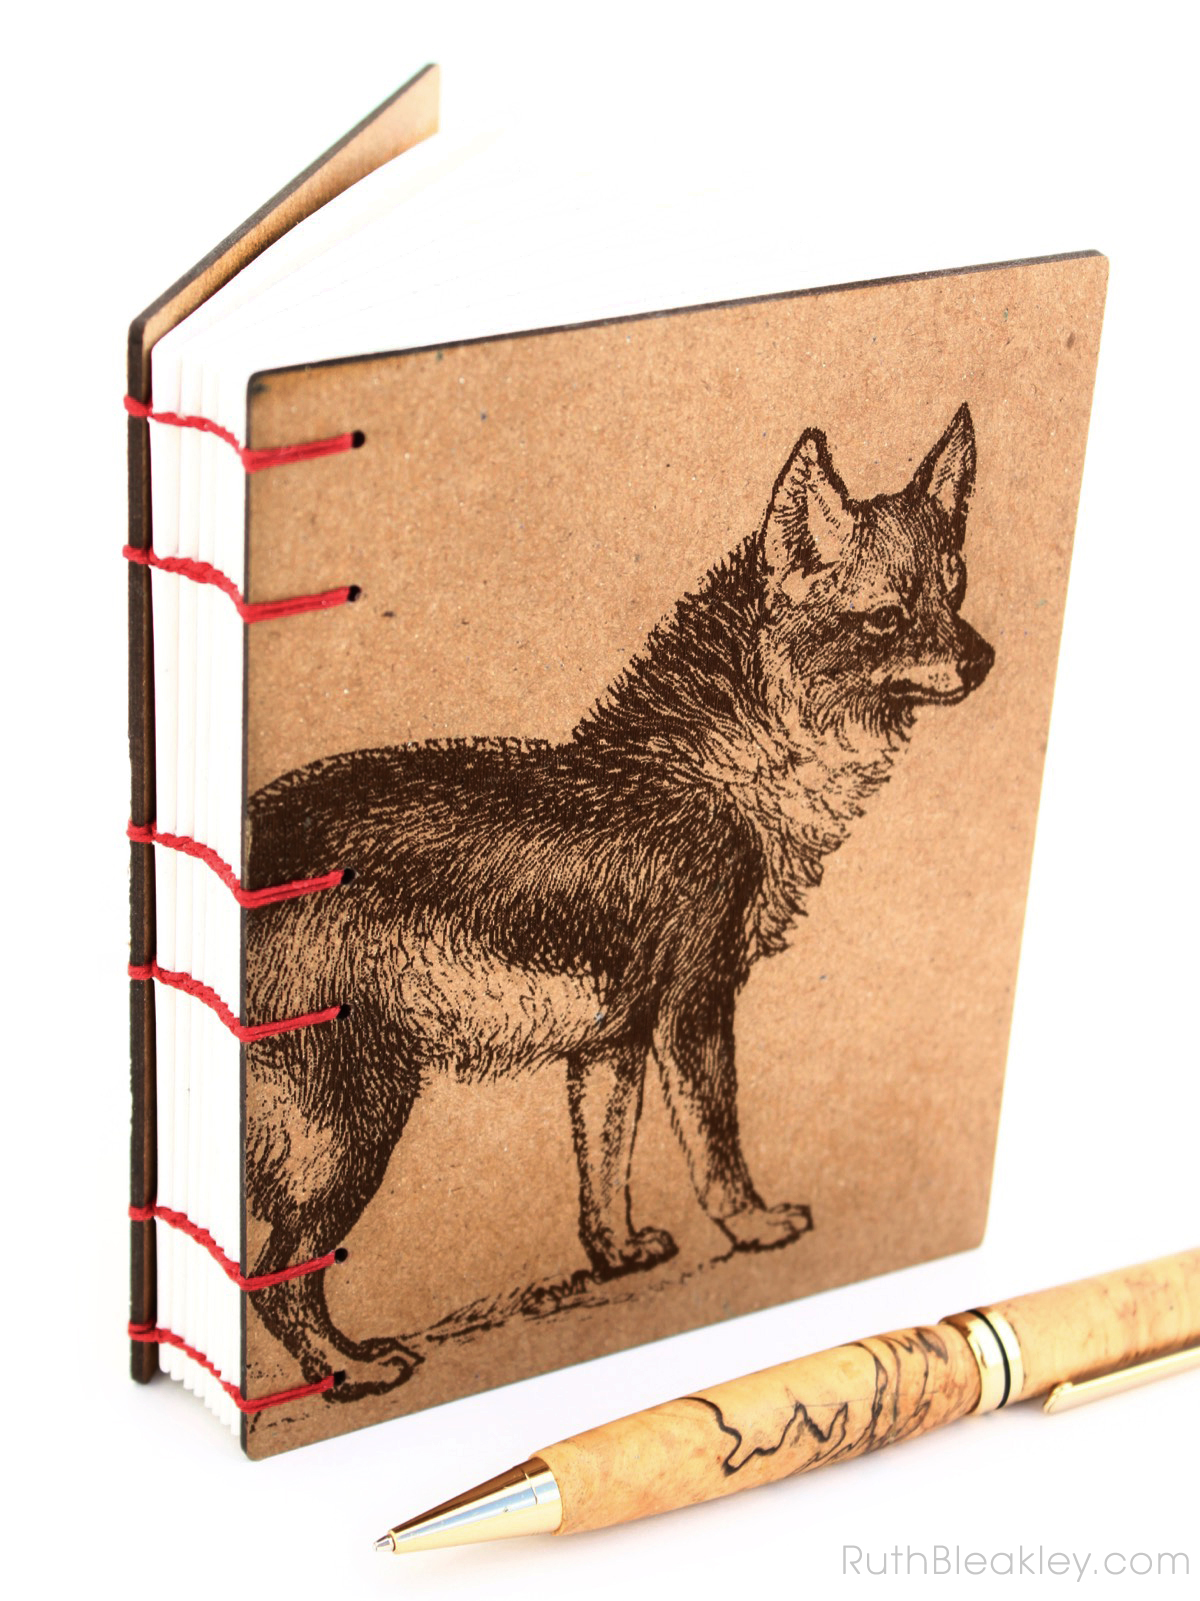 Coyote Wolf Journal handmade by American book artist Ruth Bleakley - 6